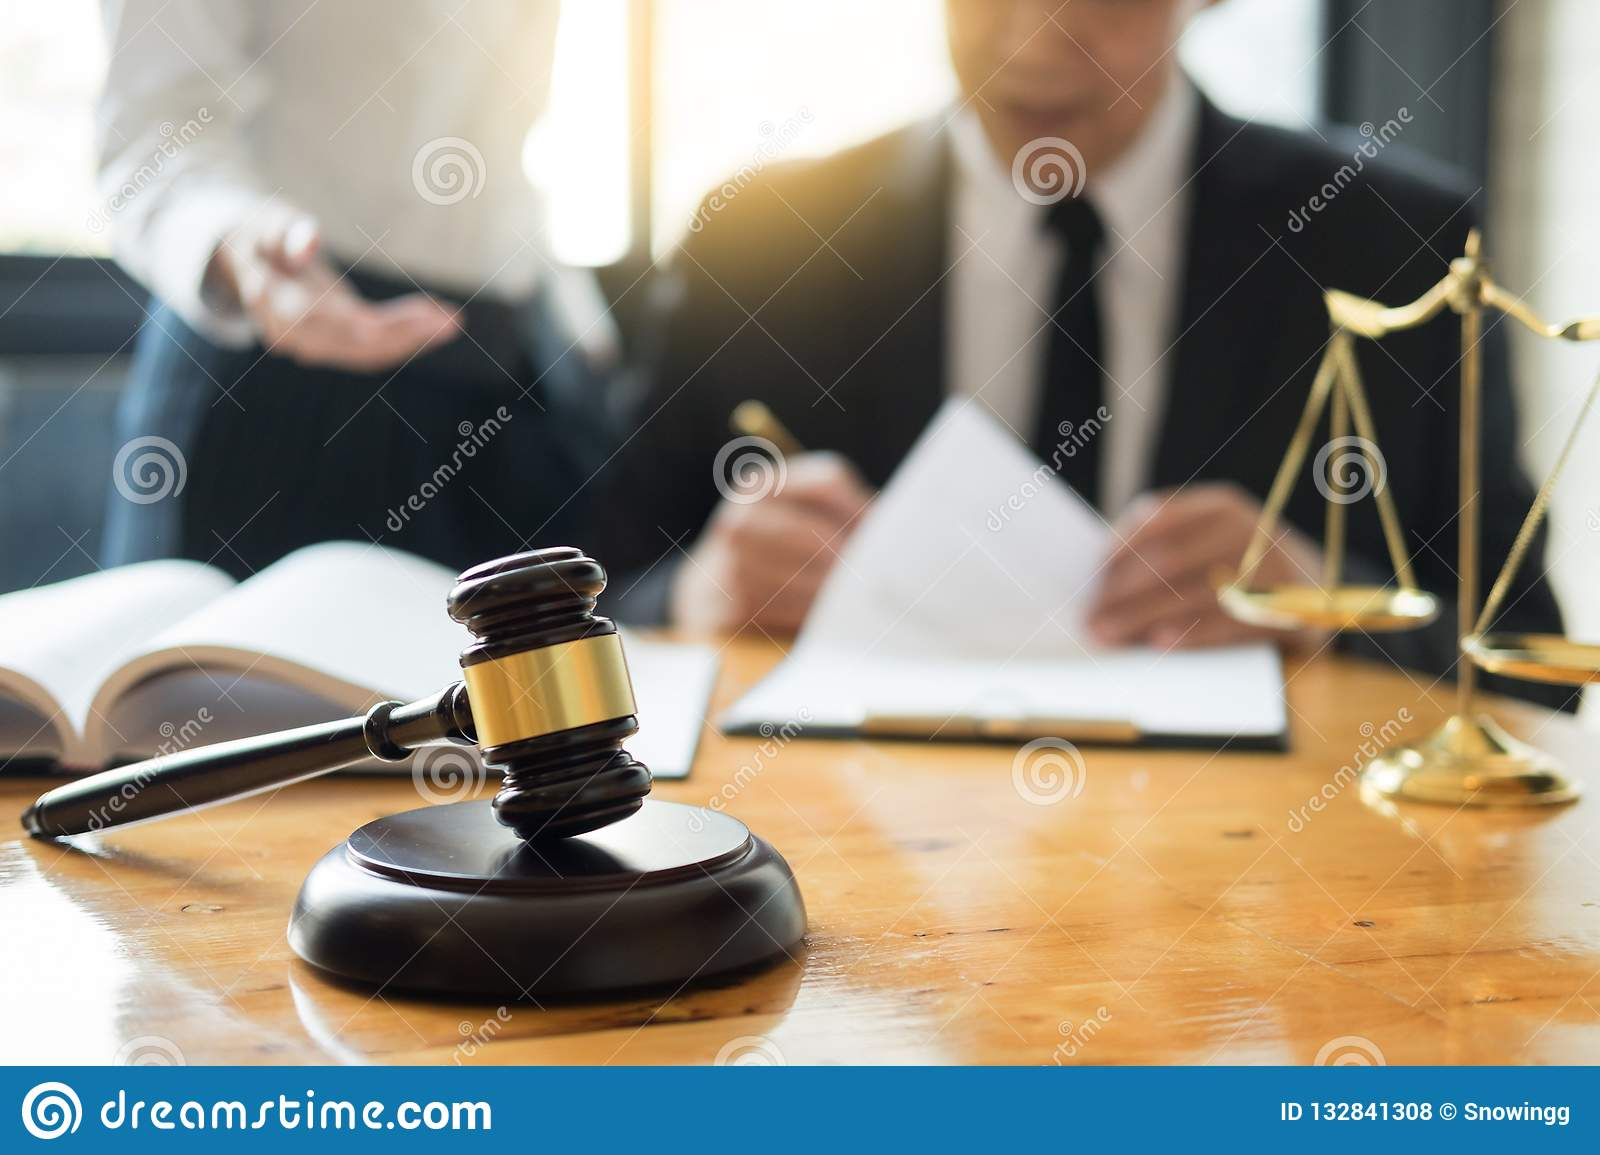 Business lawyer judge working about legal legislation Consultation with insurance with gavel and balance for deciding on